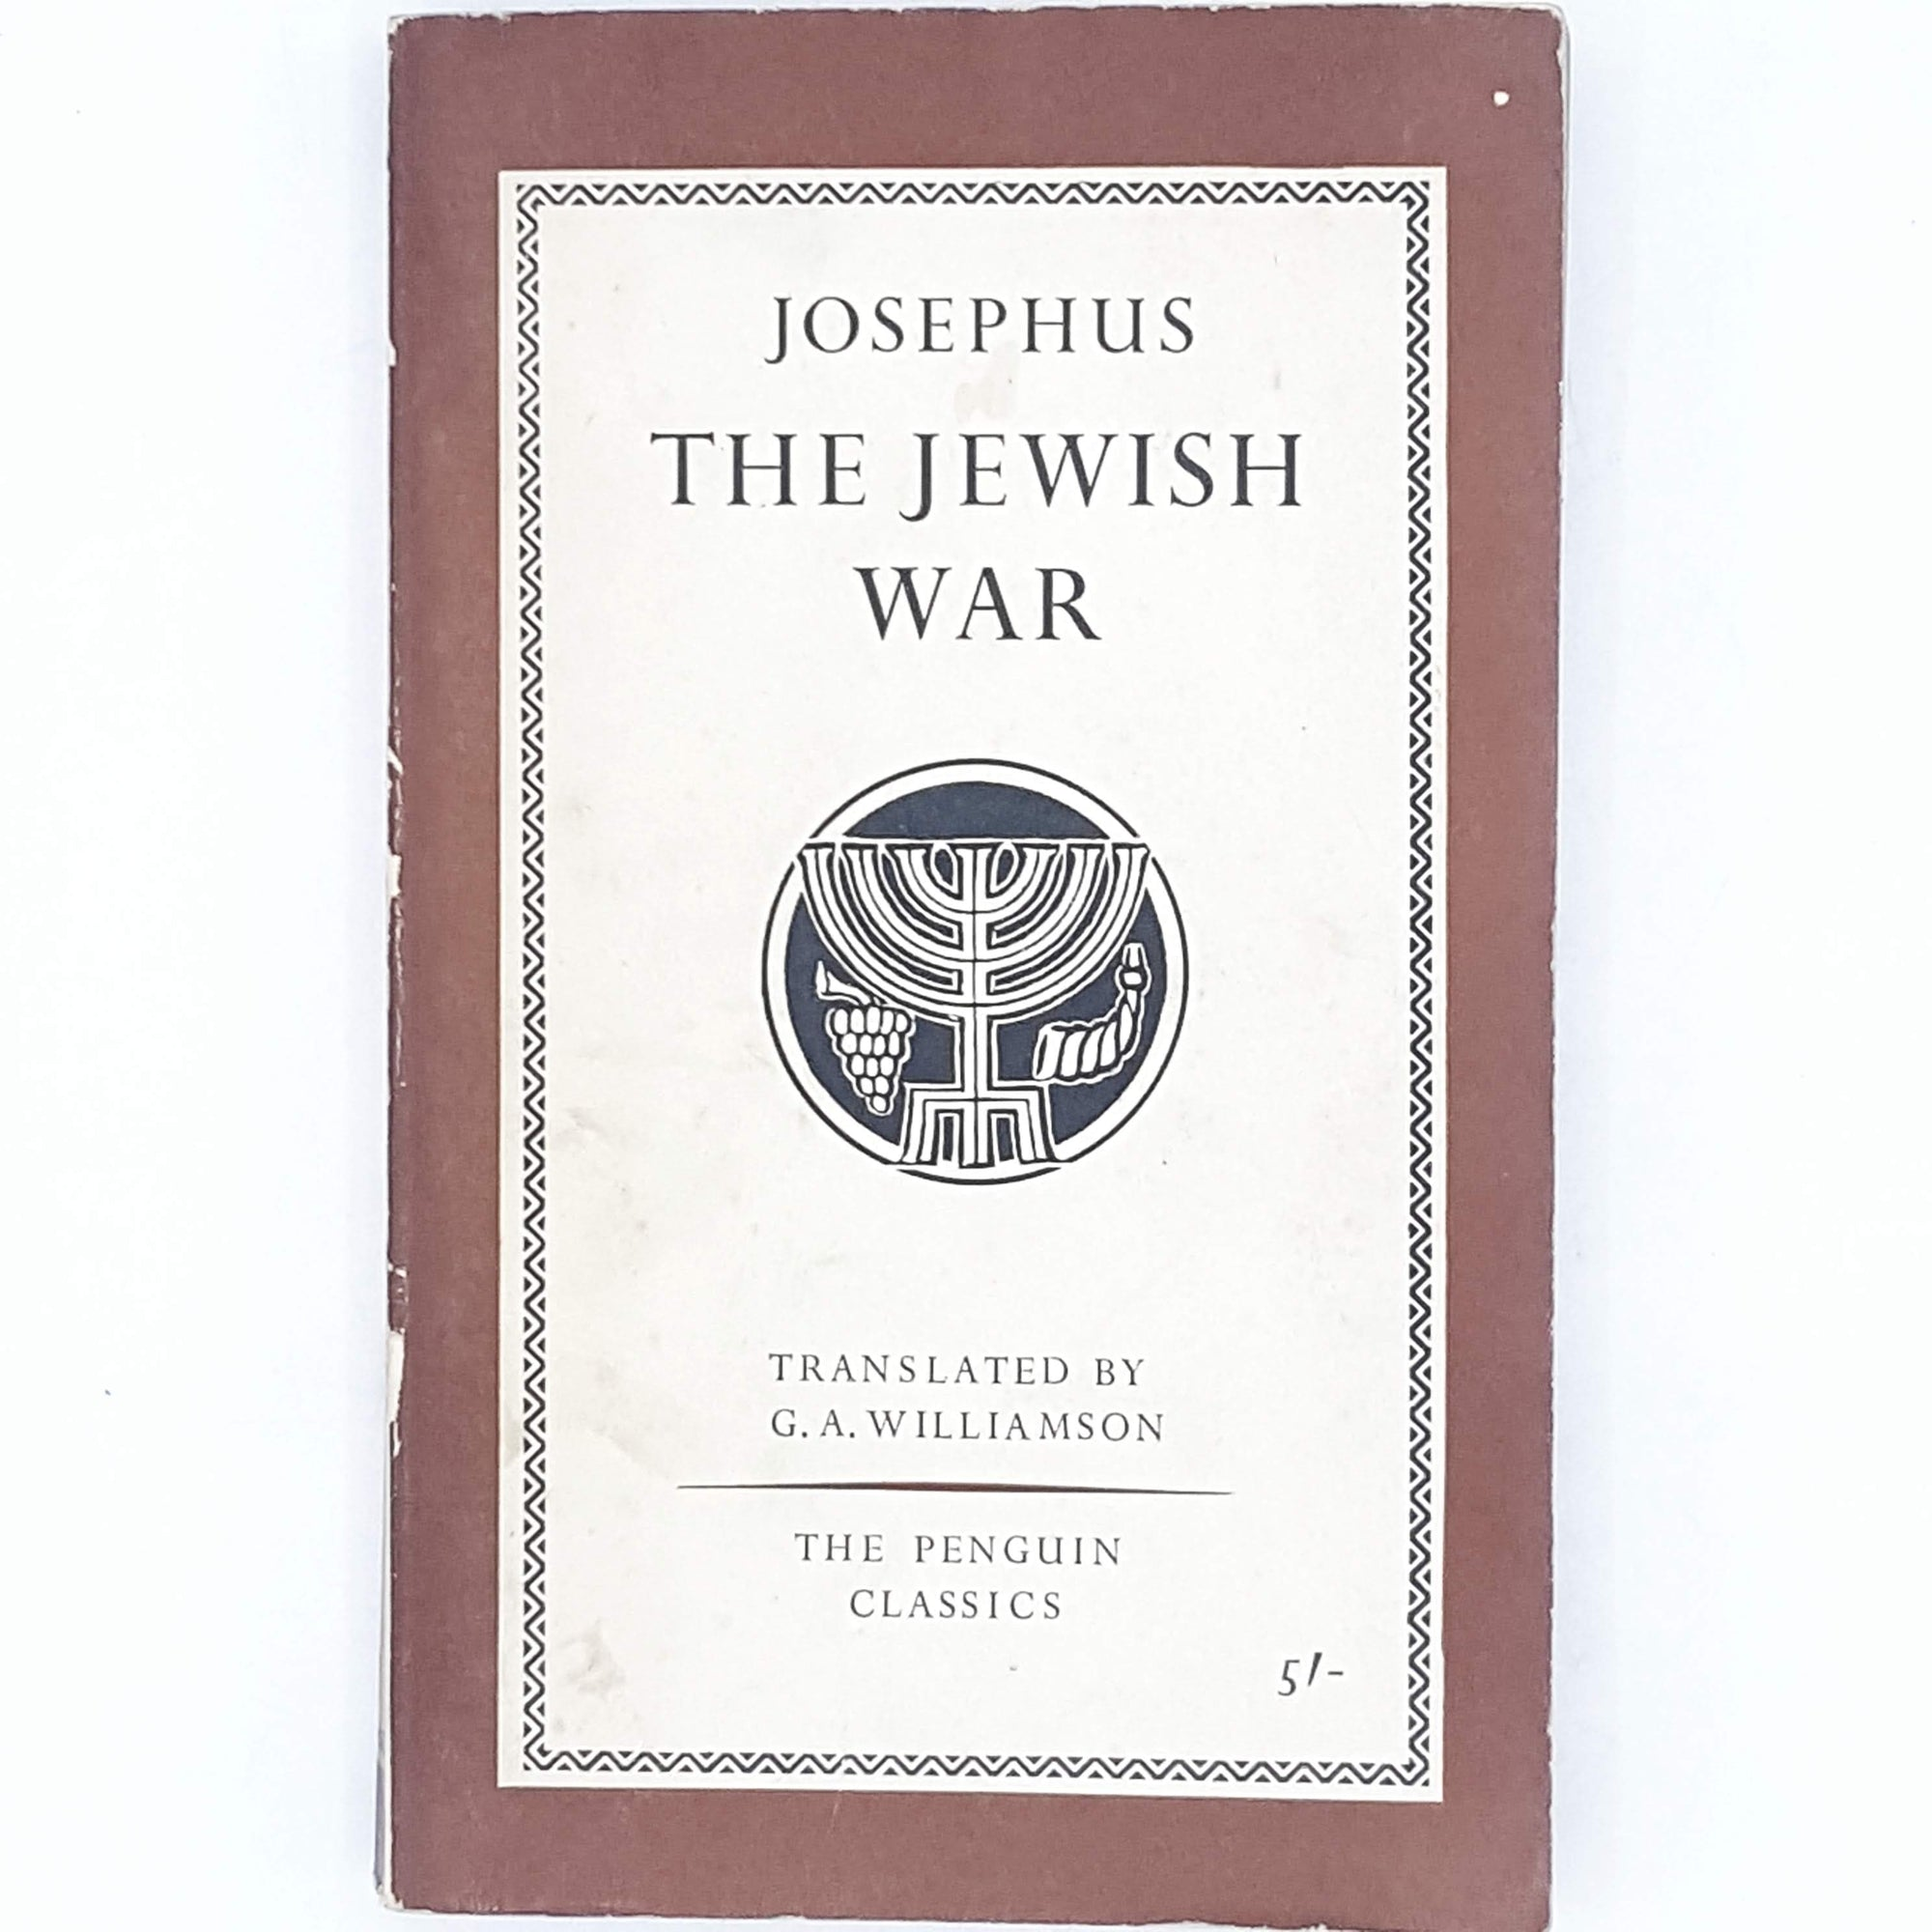 The Jewish War by Josephus 1960